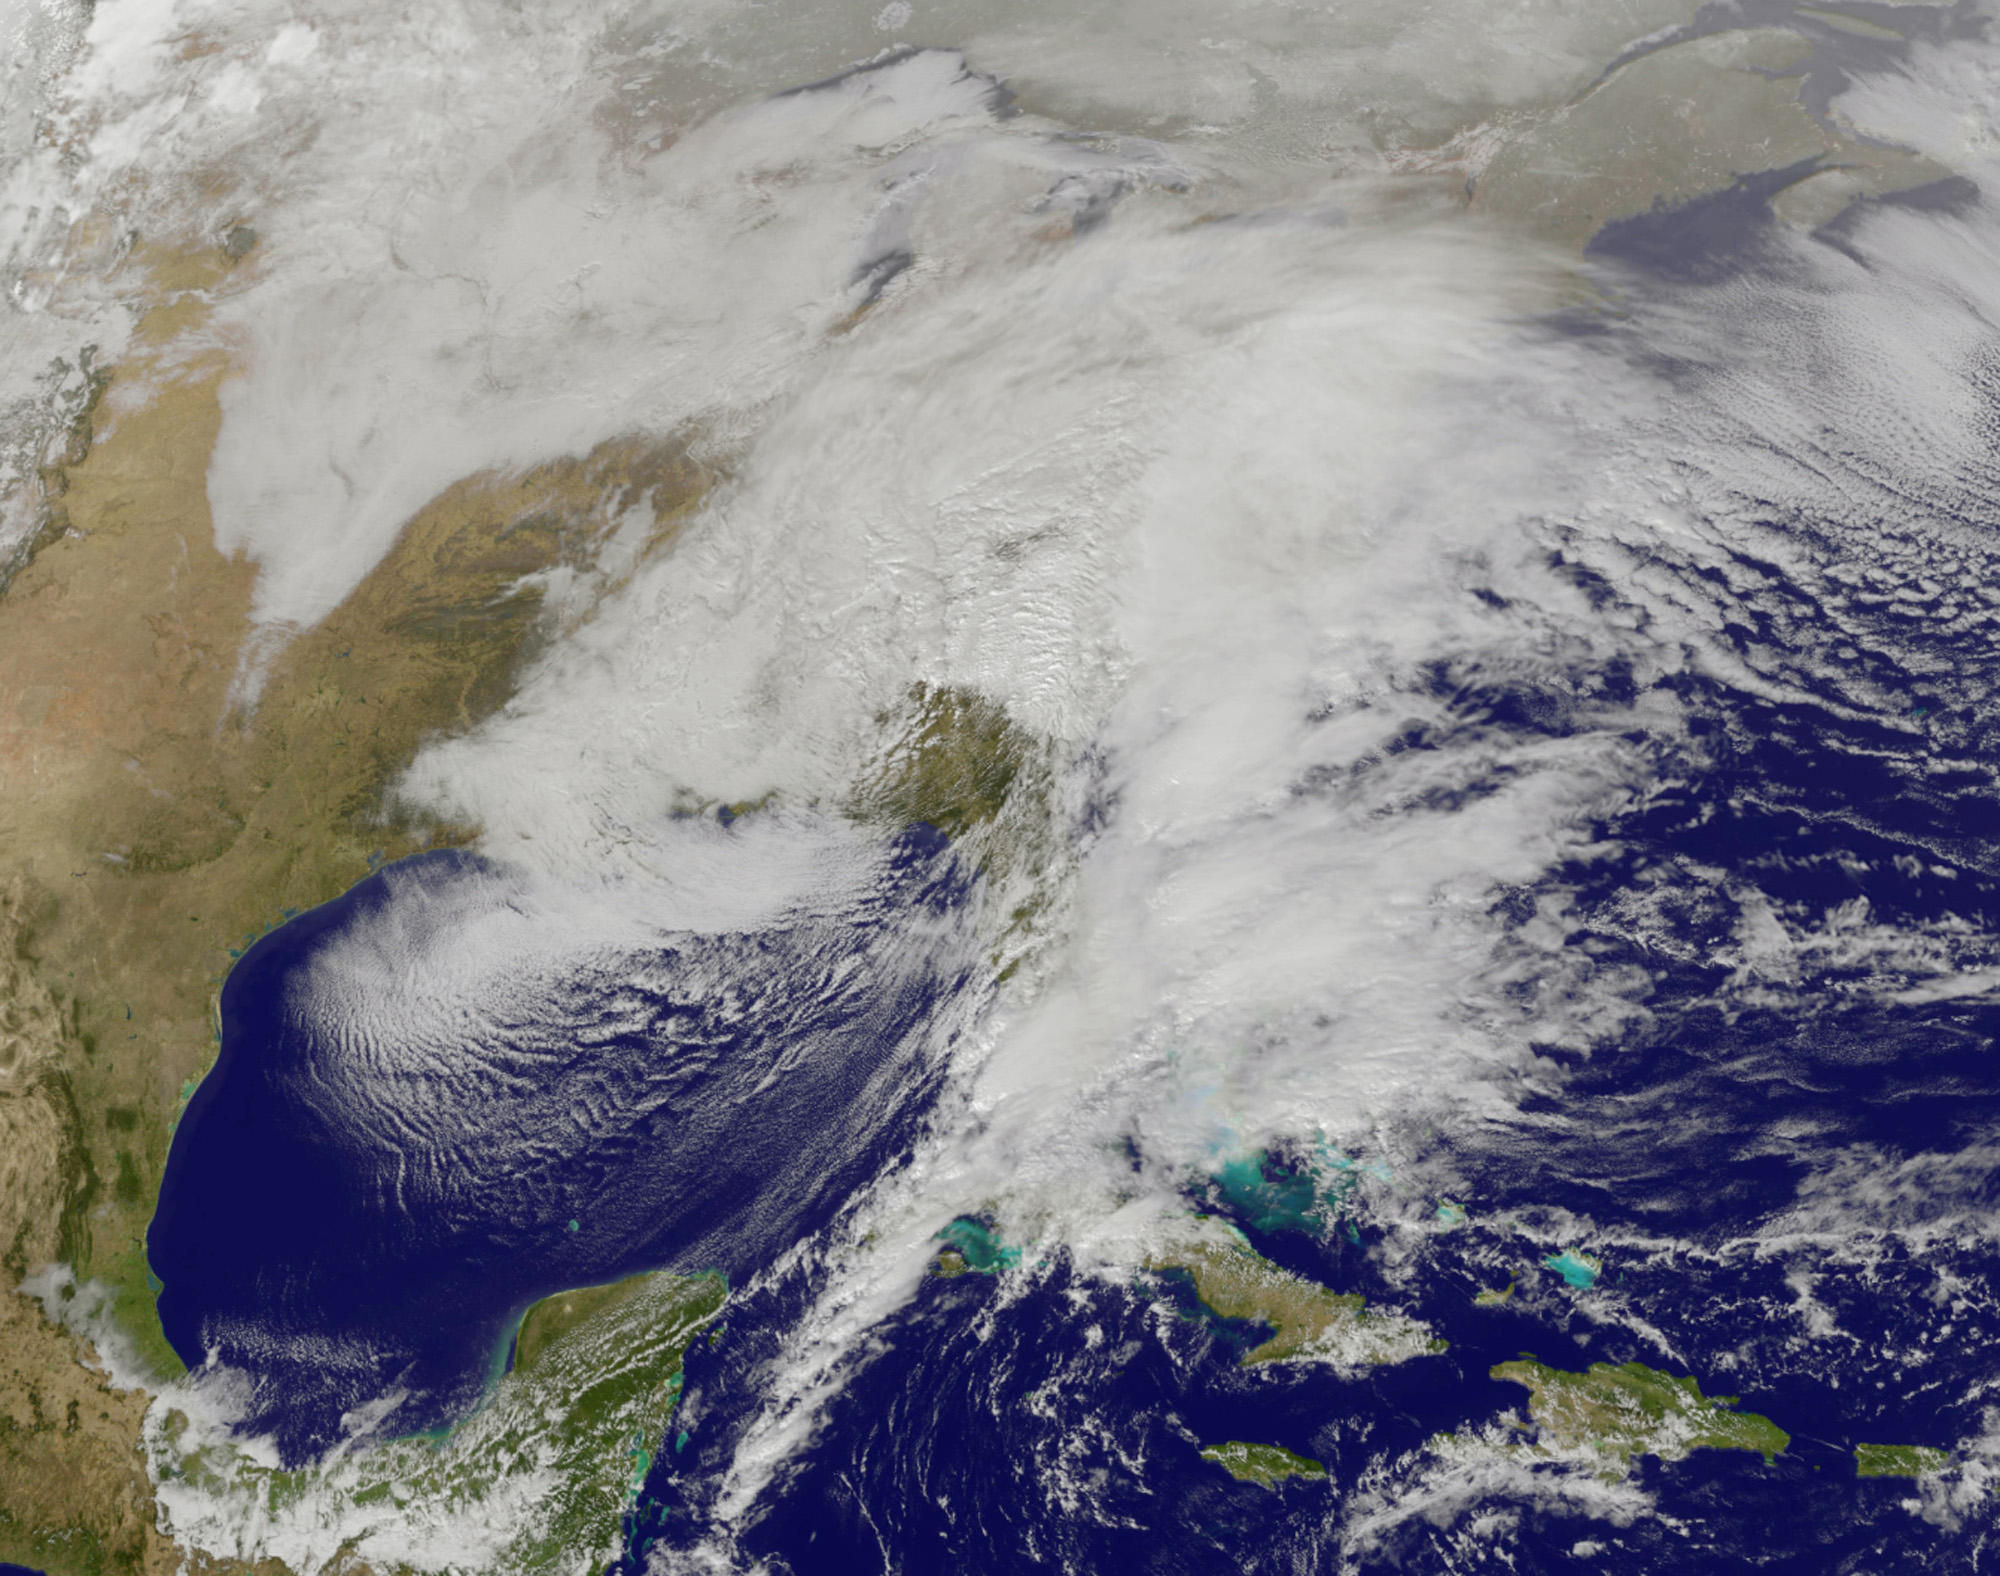 Winter Storm Brings Concerns About Storm Surge On Long